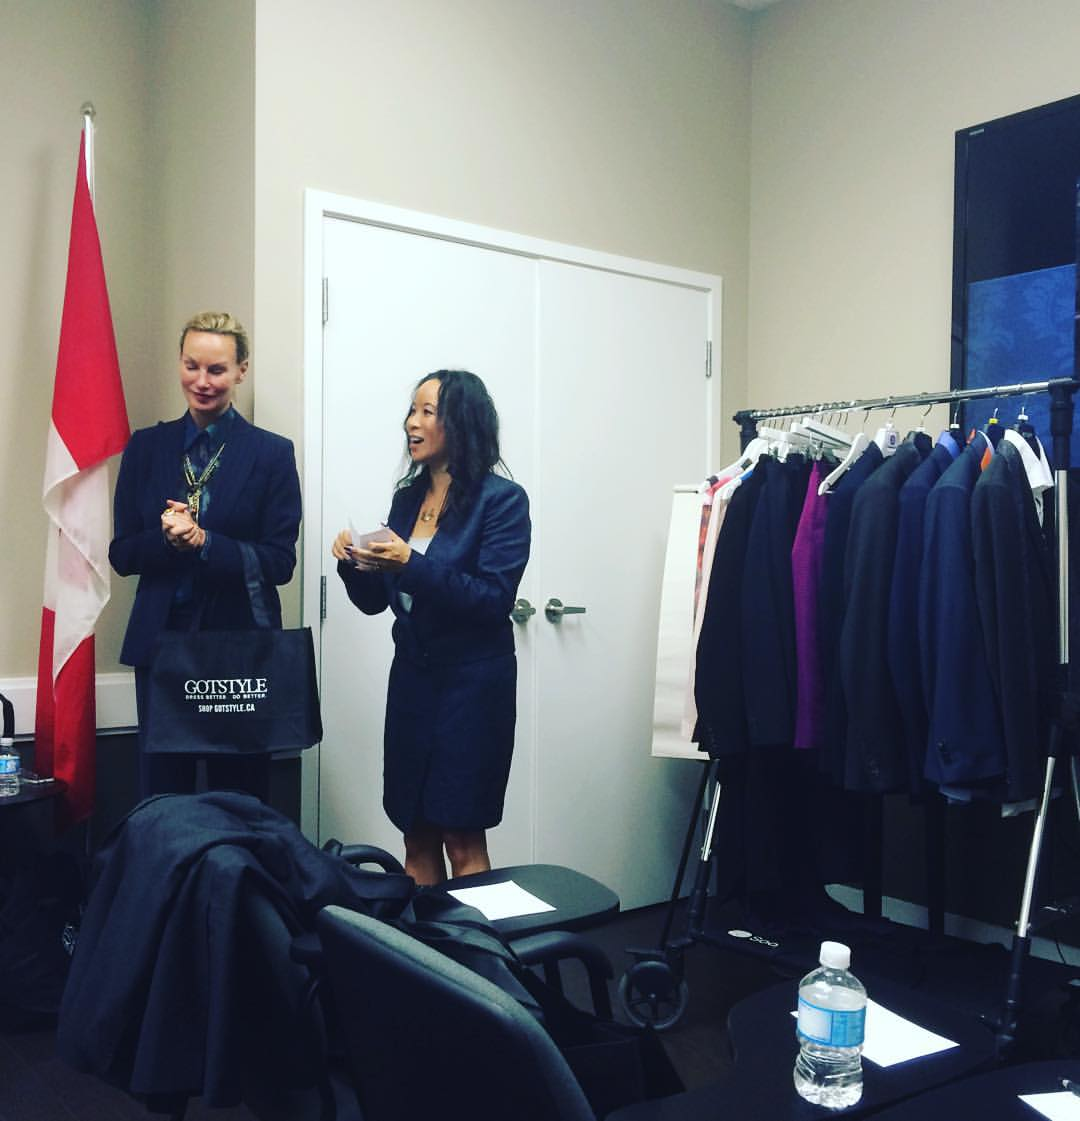 We want to send a quick shout out to @msgotstyle who was in our training centre this week talking about dressing better and doing better. Great information on men's business attire including canvas vs. fusing / playing with prints / avoiding boxy fits / blazer lengths / collar tricks and more. She is an encyclopedia of information on mastering style. We learned something. Thanks Melissa!!     Check out their two amazing stores at 60 Bathurst and in the #distillerydistrict . You won't be disappointed!     If you're an office manager, talk to Moe and get them into your company 👍🏼      #Toronto #torontofashion #torontolife  #lovetoronto #downtownto #downtowntoliving #sixside #the6ix  (at The Ravi Singh Team at ReMax Hallmark)